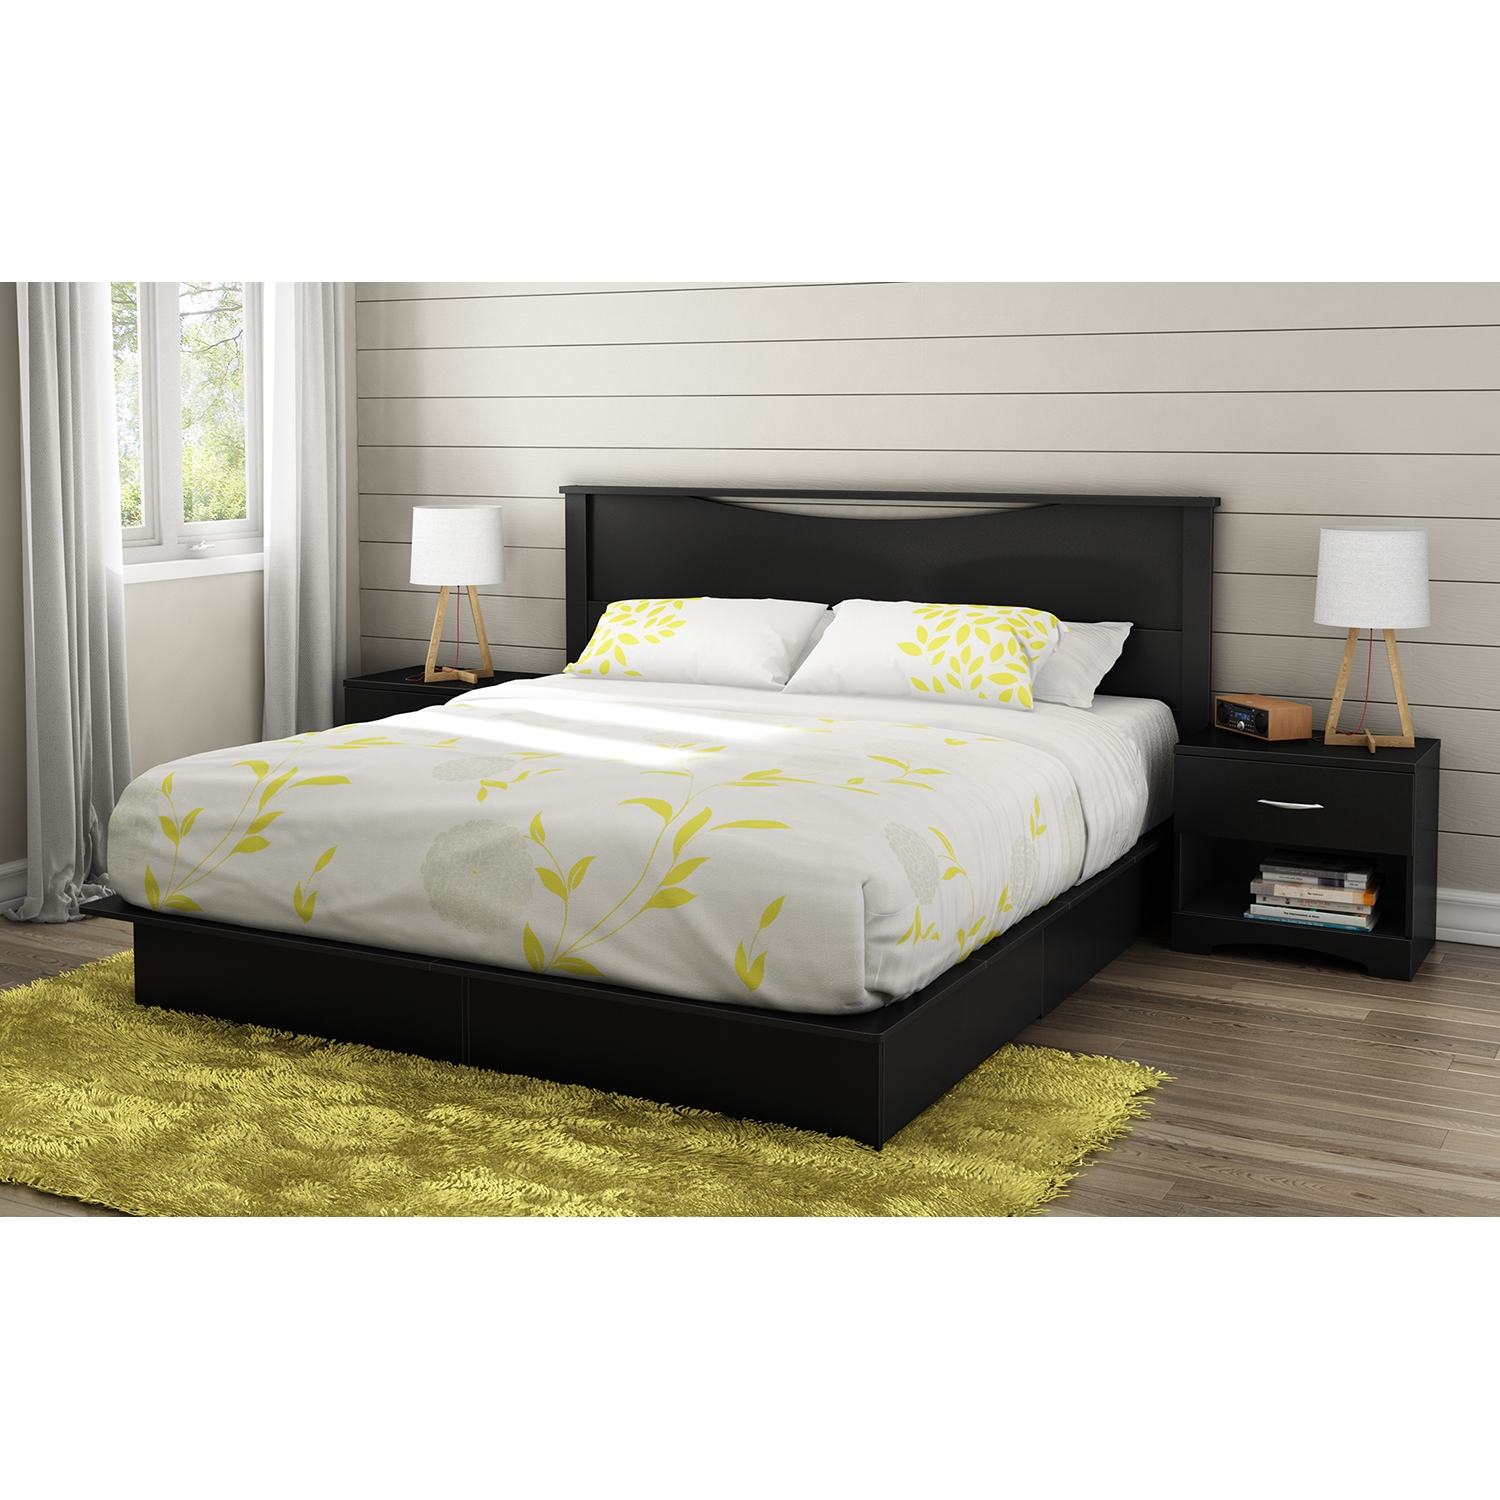 Step One King Platform Bed - 2 Drawers, Pure Black - SS-3107237